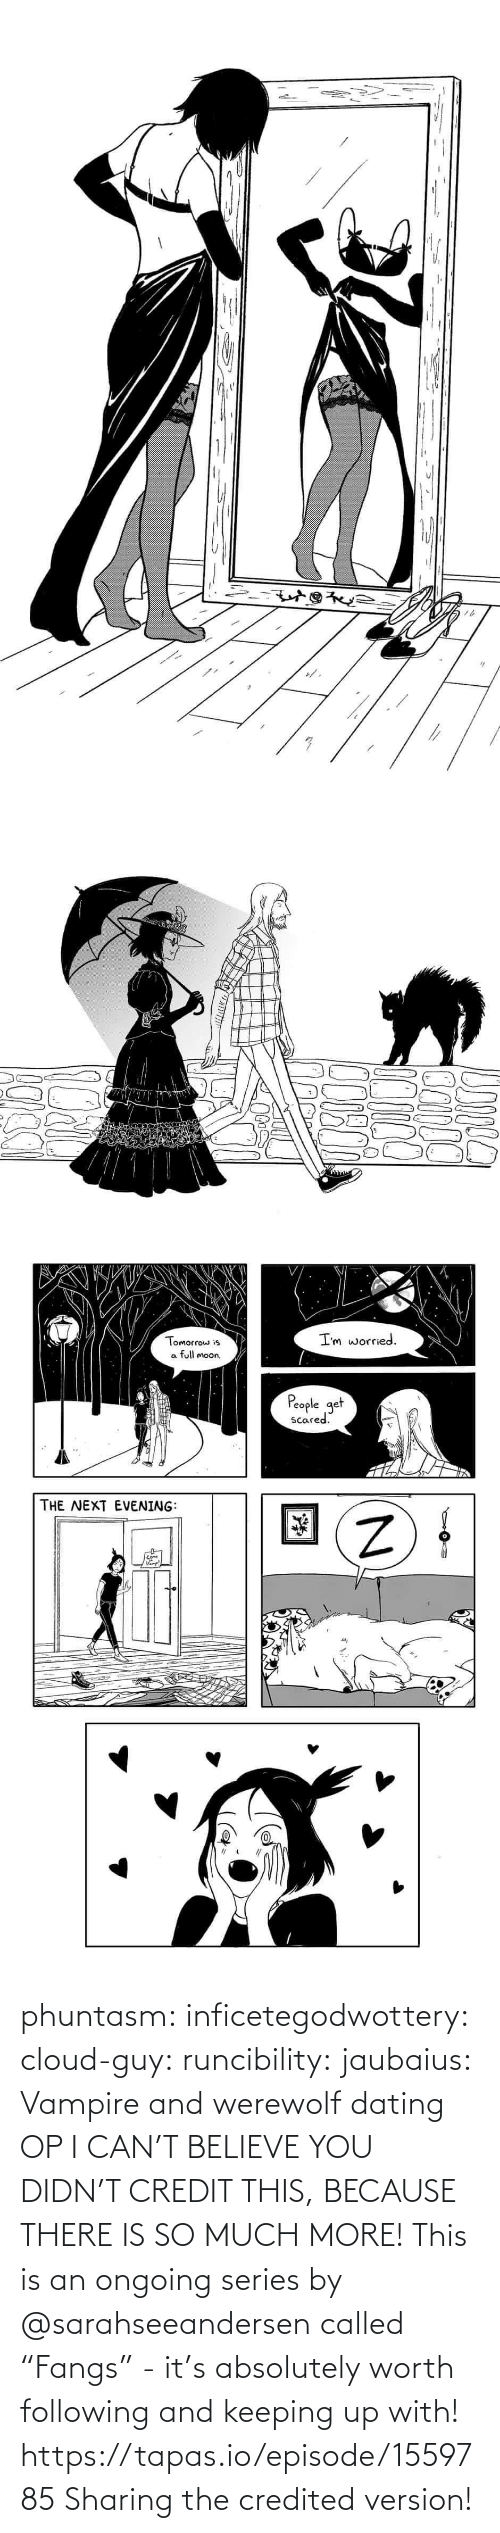 "Dating, True, and Tumblr: phuntasm: inficetegodwottery:  cloud-guy:   runcibility:  jaubaius:   Vampire and werewolf dating   OP I CAN'T BELIEVE YOU DIDN'T CREDIT THIS, BECAUSE THERE IS SO MUCH MORE! This is an ongoing series by @sarahseeandersen called ""Fangs"" - it's absolutely worth following and keeping up with! https://tapas.io/episode/1559785    Sharing the credited version!"